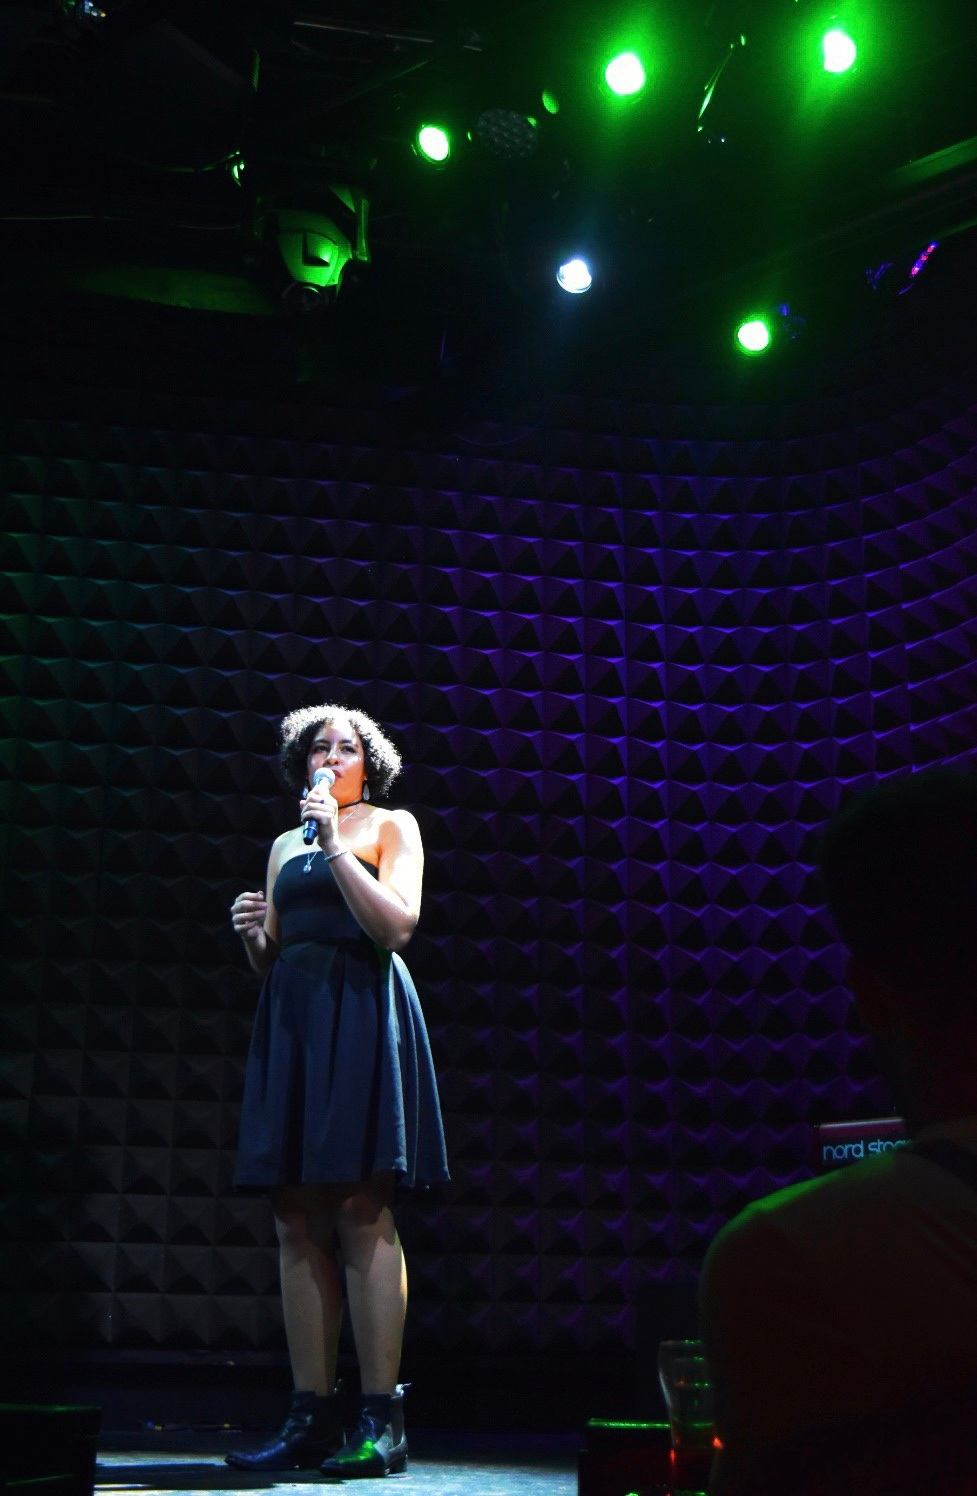 Photo by Sarah Lou Kiernan from #BARS at The Public Theater